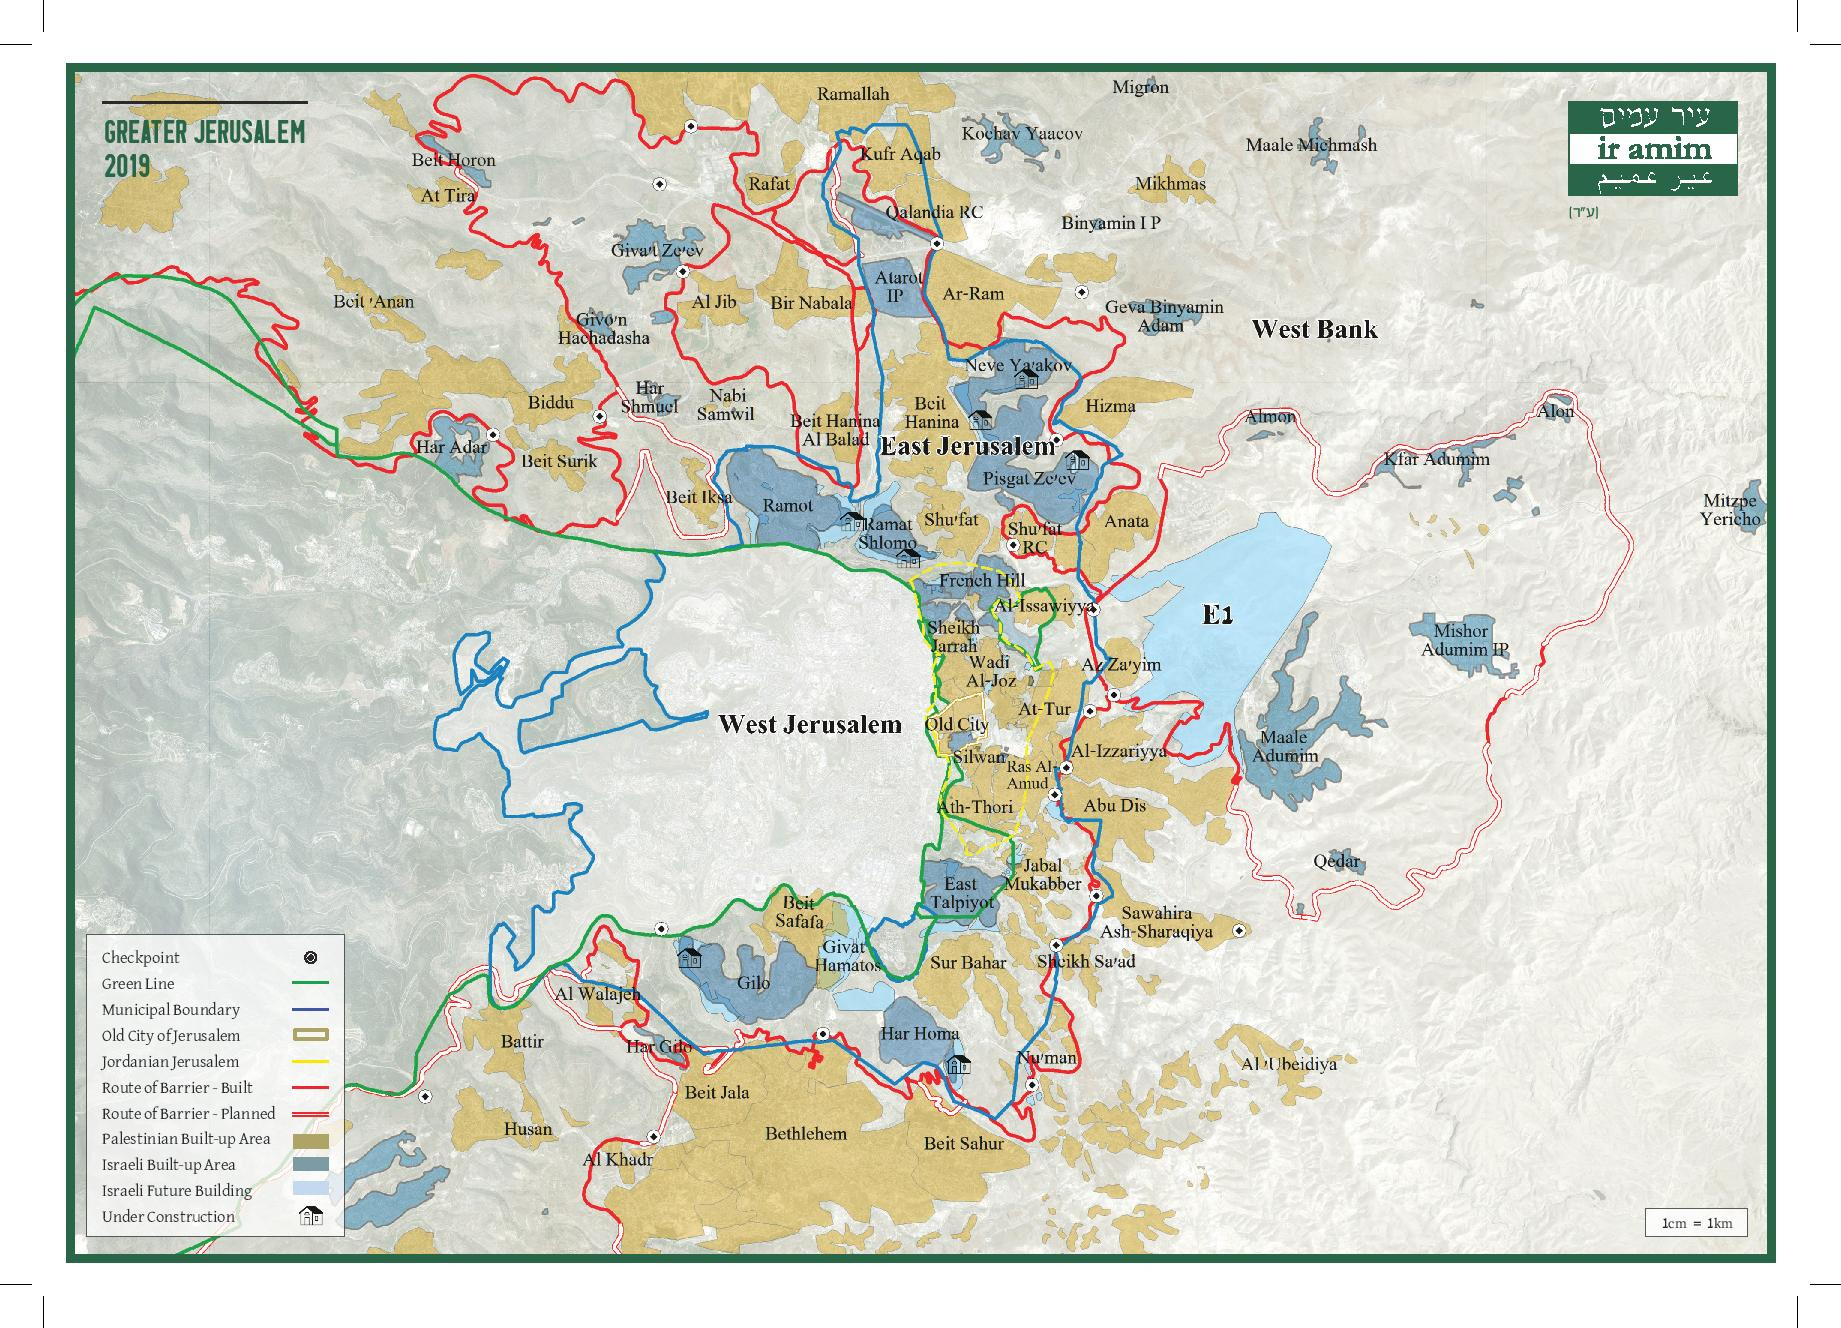 Image shows a map of Jerusalem with the Green Line, municipal boundaries, Israeli and Palestinian neighborhoods, and the Separation Barrier delineated.